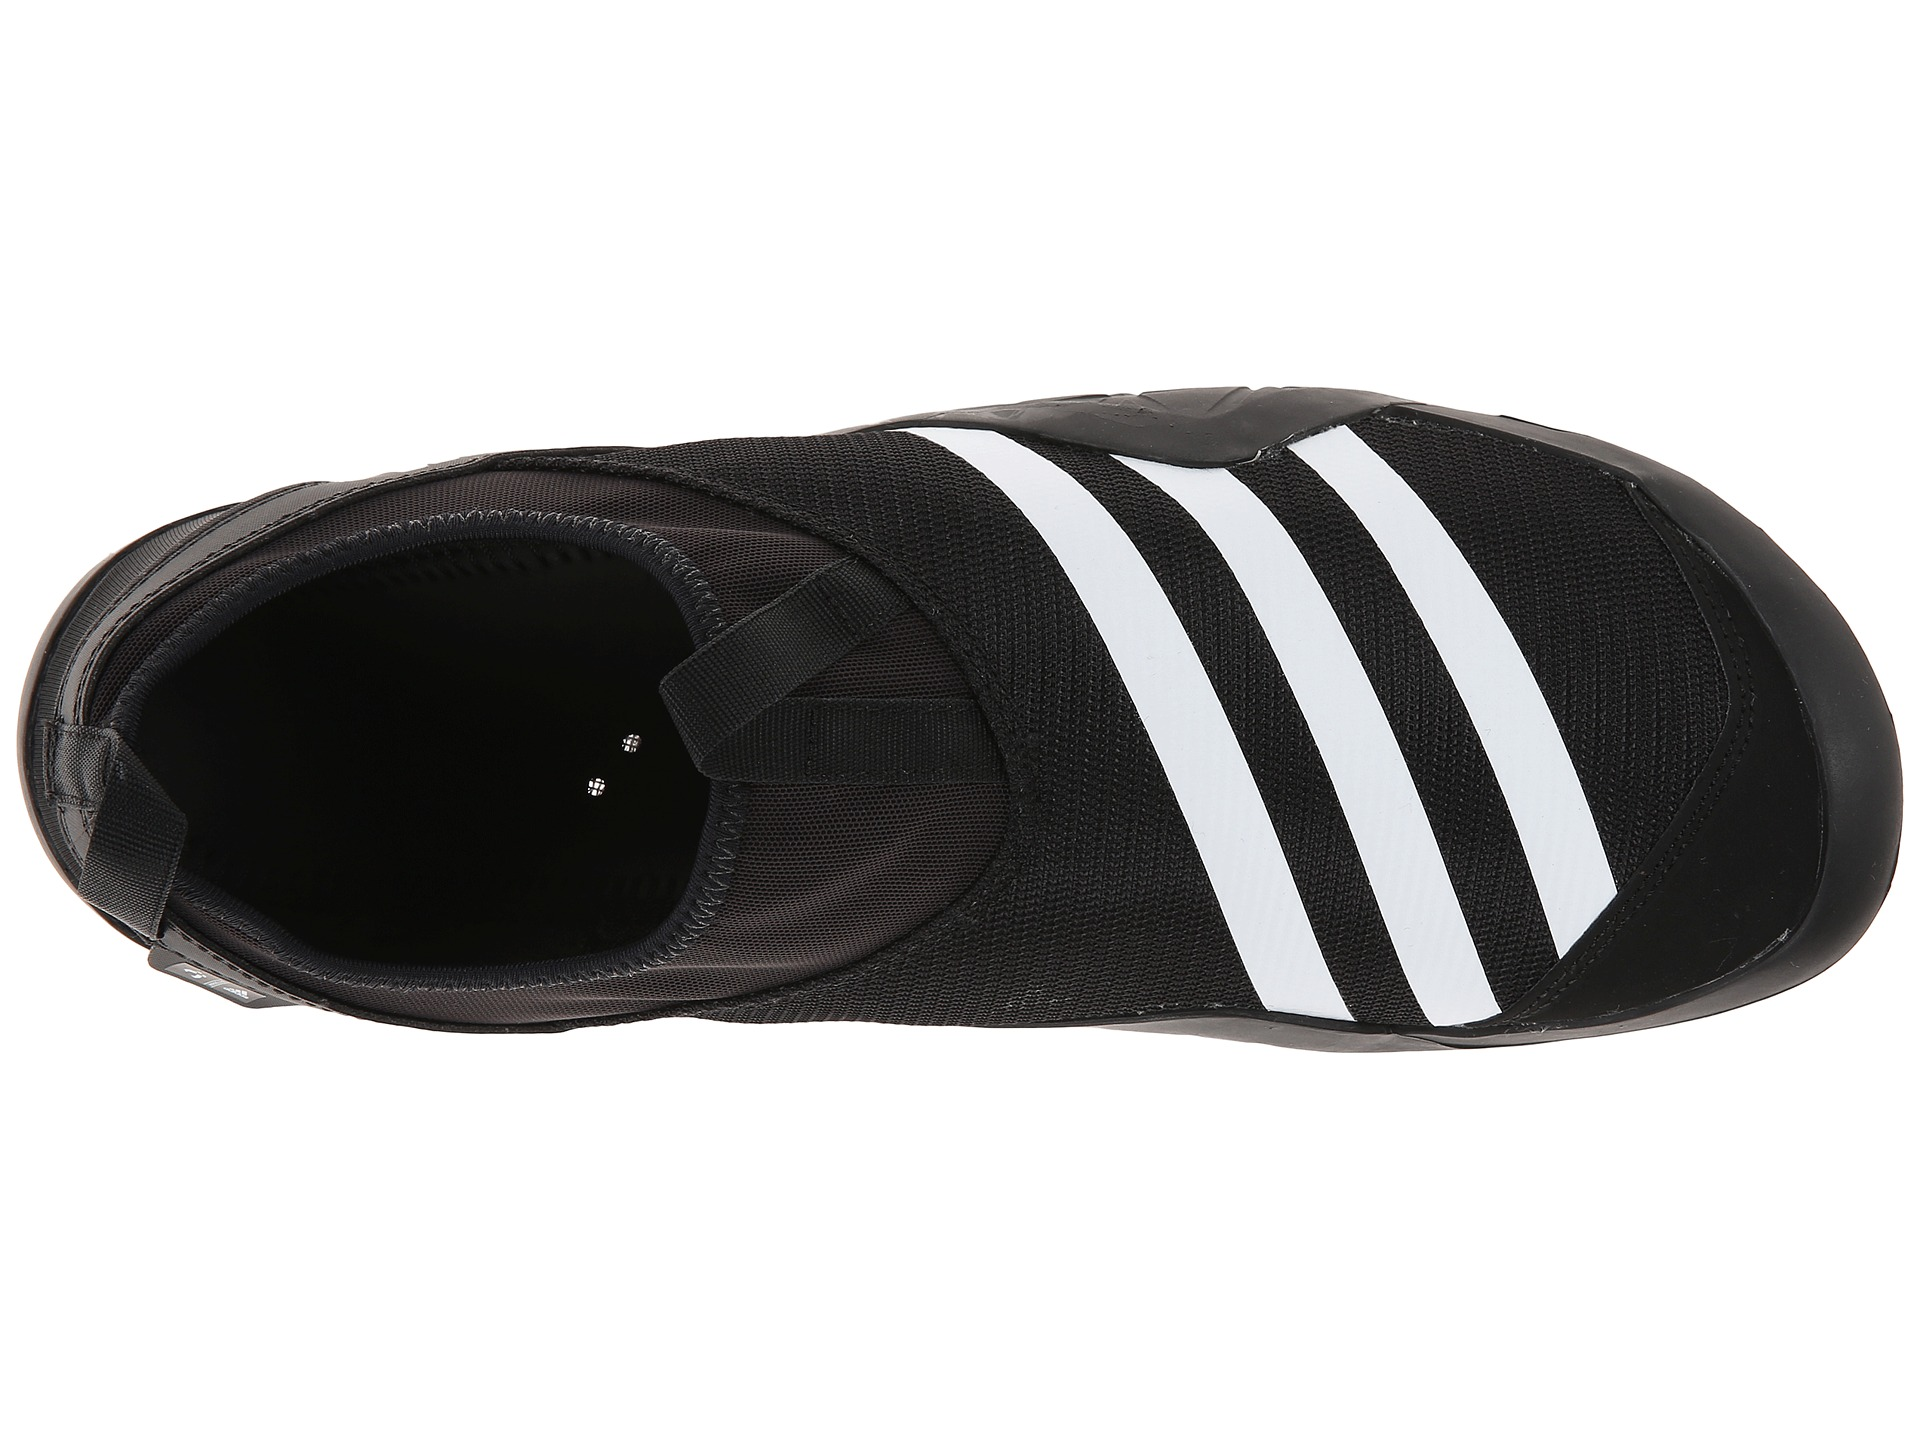 adidas outdoor climacool jawpaw slip on at. Black Bedroom Furniture Sets. Home Design Ideas